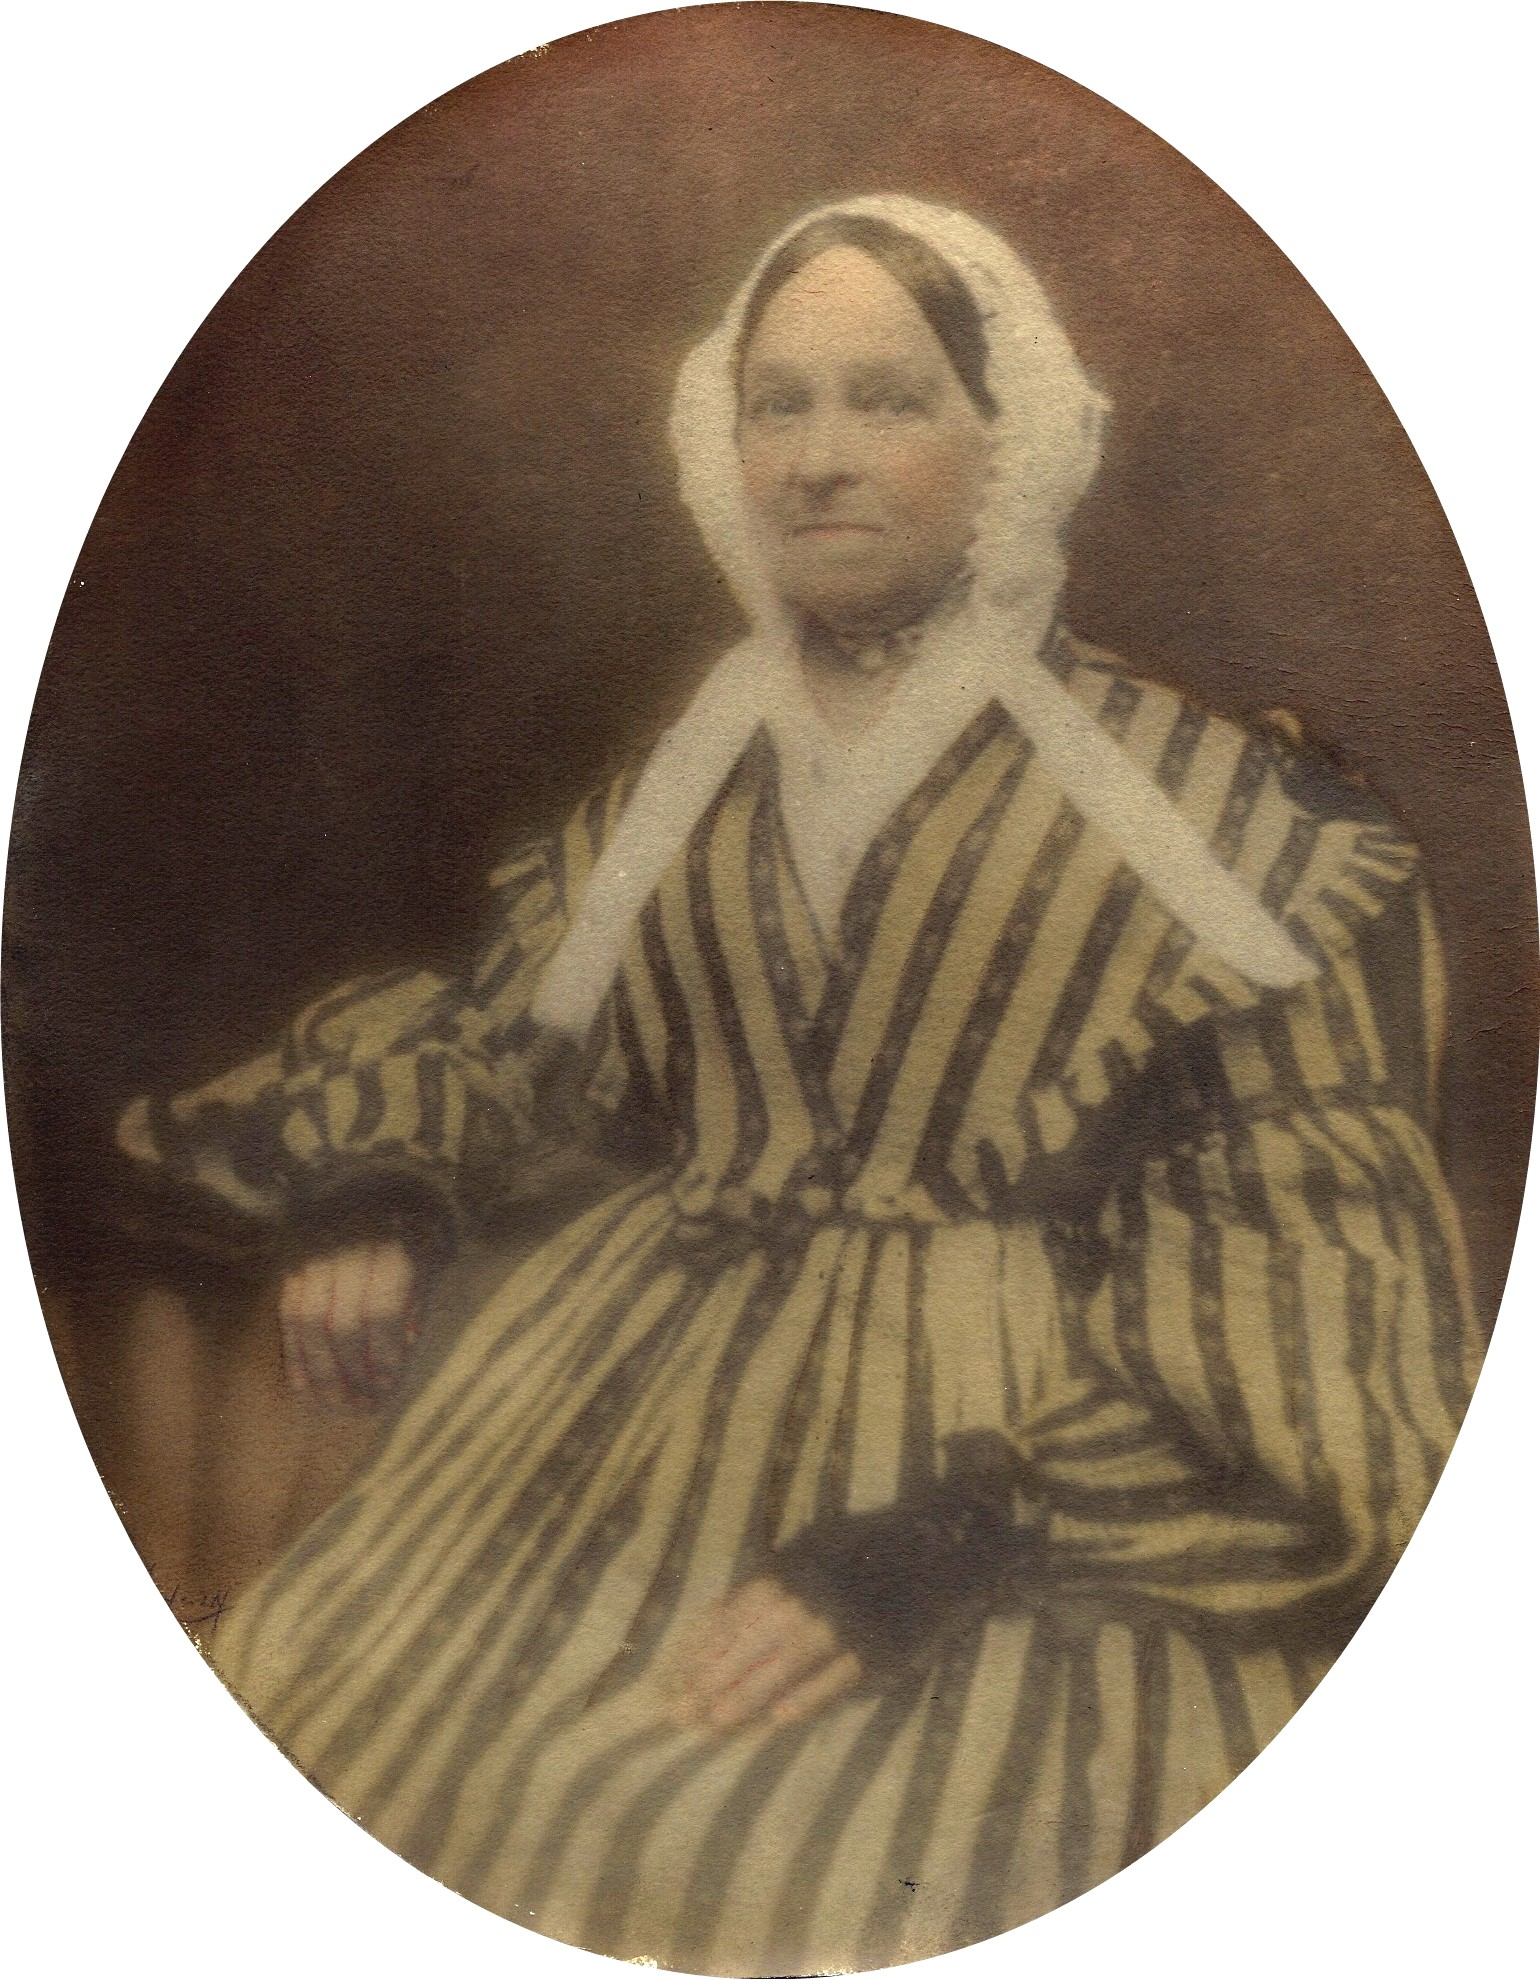 Unknown Hatch woman; probably Catherine Mitchell, wife of Junius, Sr.  Copyright 2010 Your Life and Times - All Rights Reserved